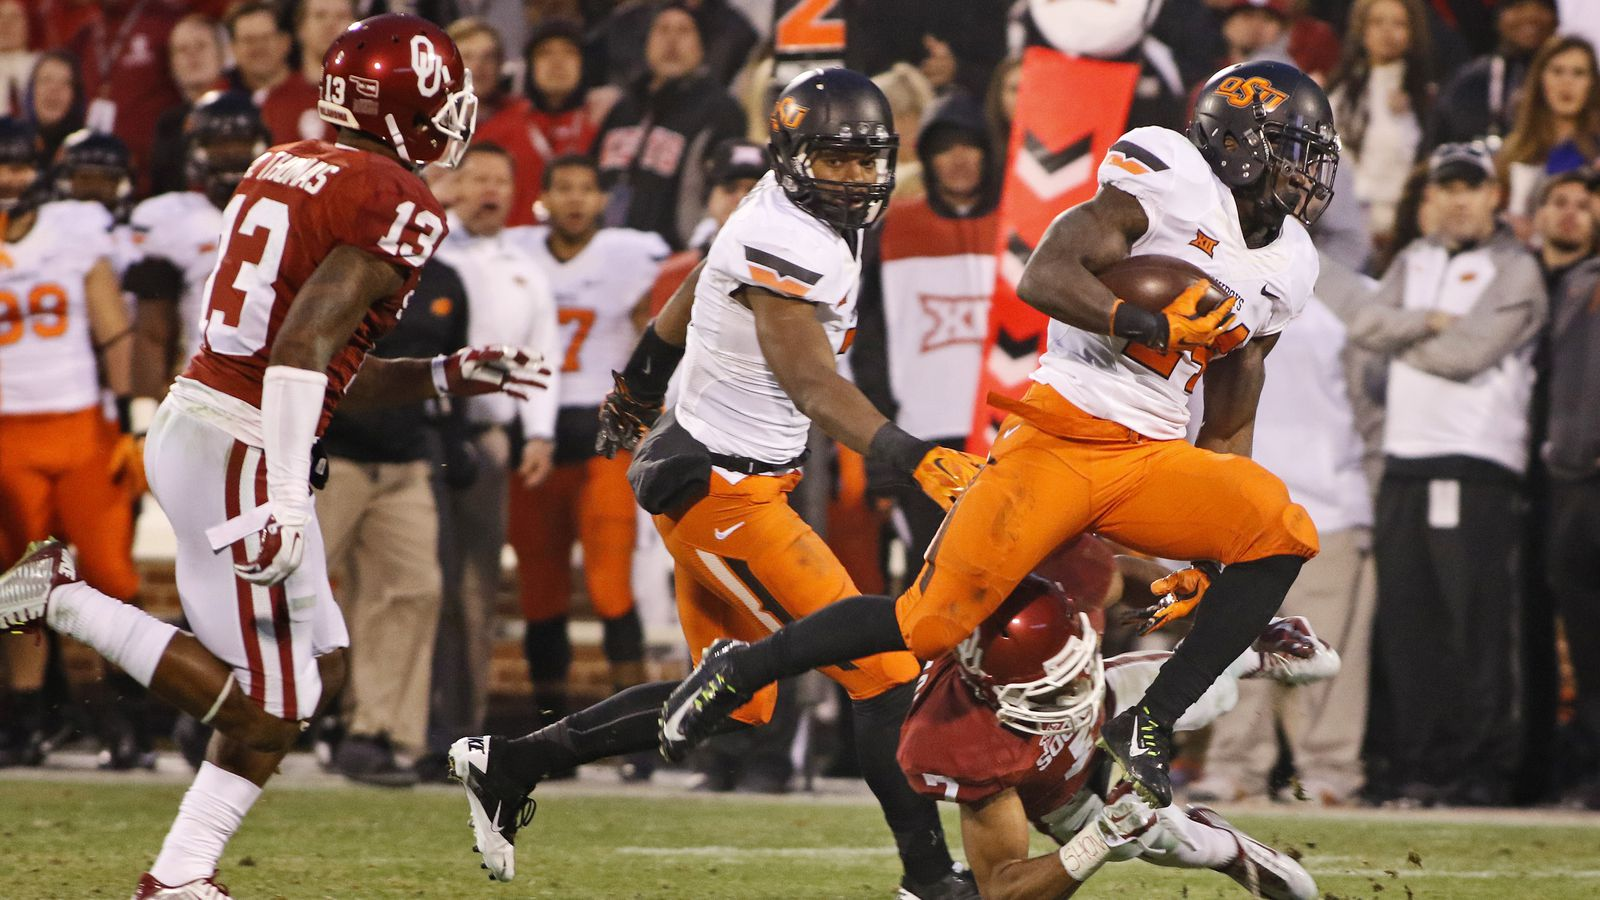 a wonderful experience with the oklahoma state football team As we get ready to watch our son jake, @jirvy18 sign his first contract with the washington nationals today, can't help but reflect on his wonderful experience at u of oklahoma sooners forever.